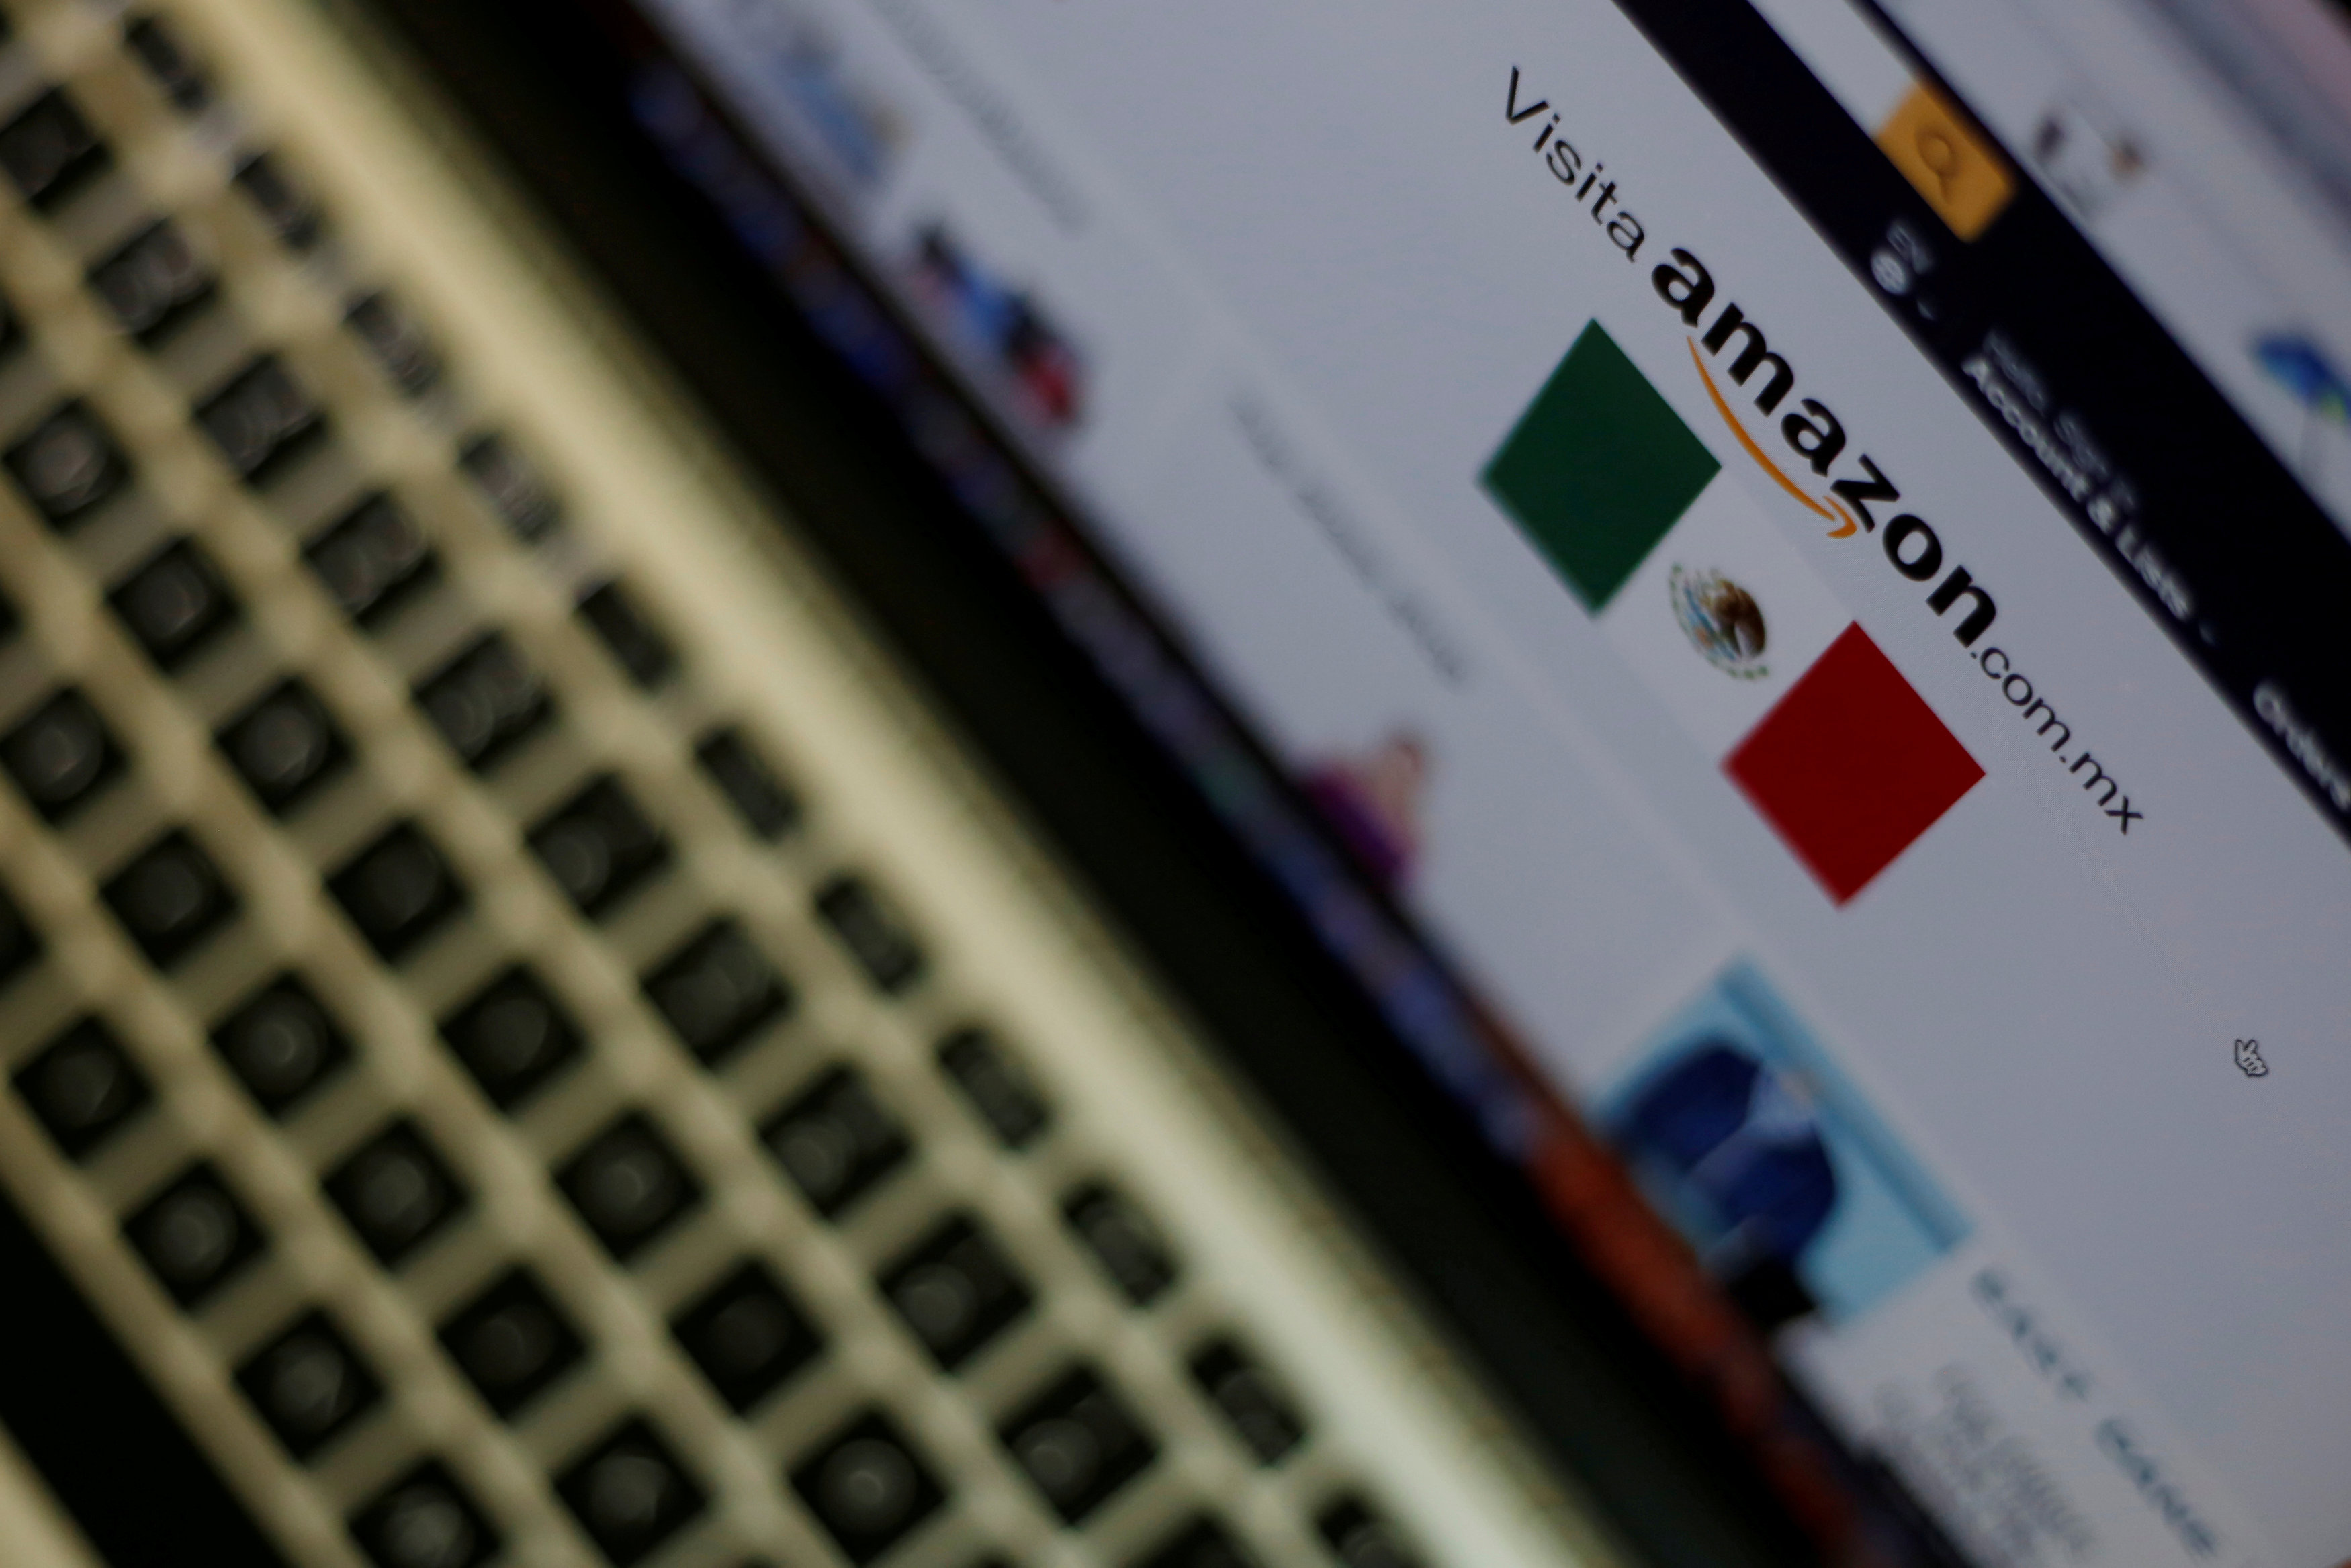 The logo of the web service Amazon is pictured in this illustration photo.